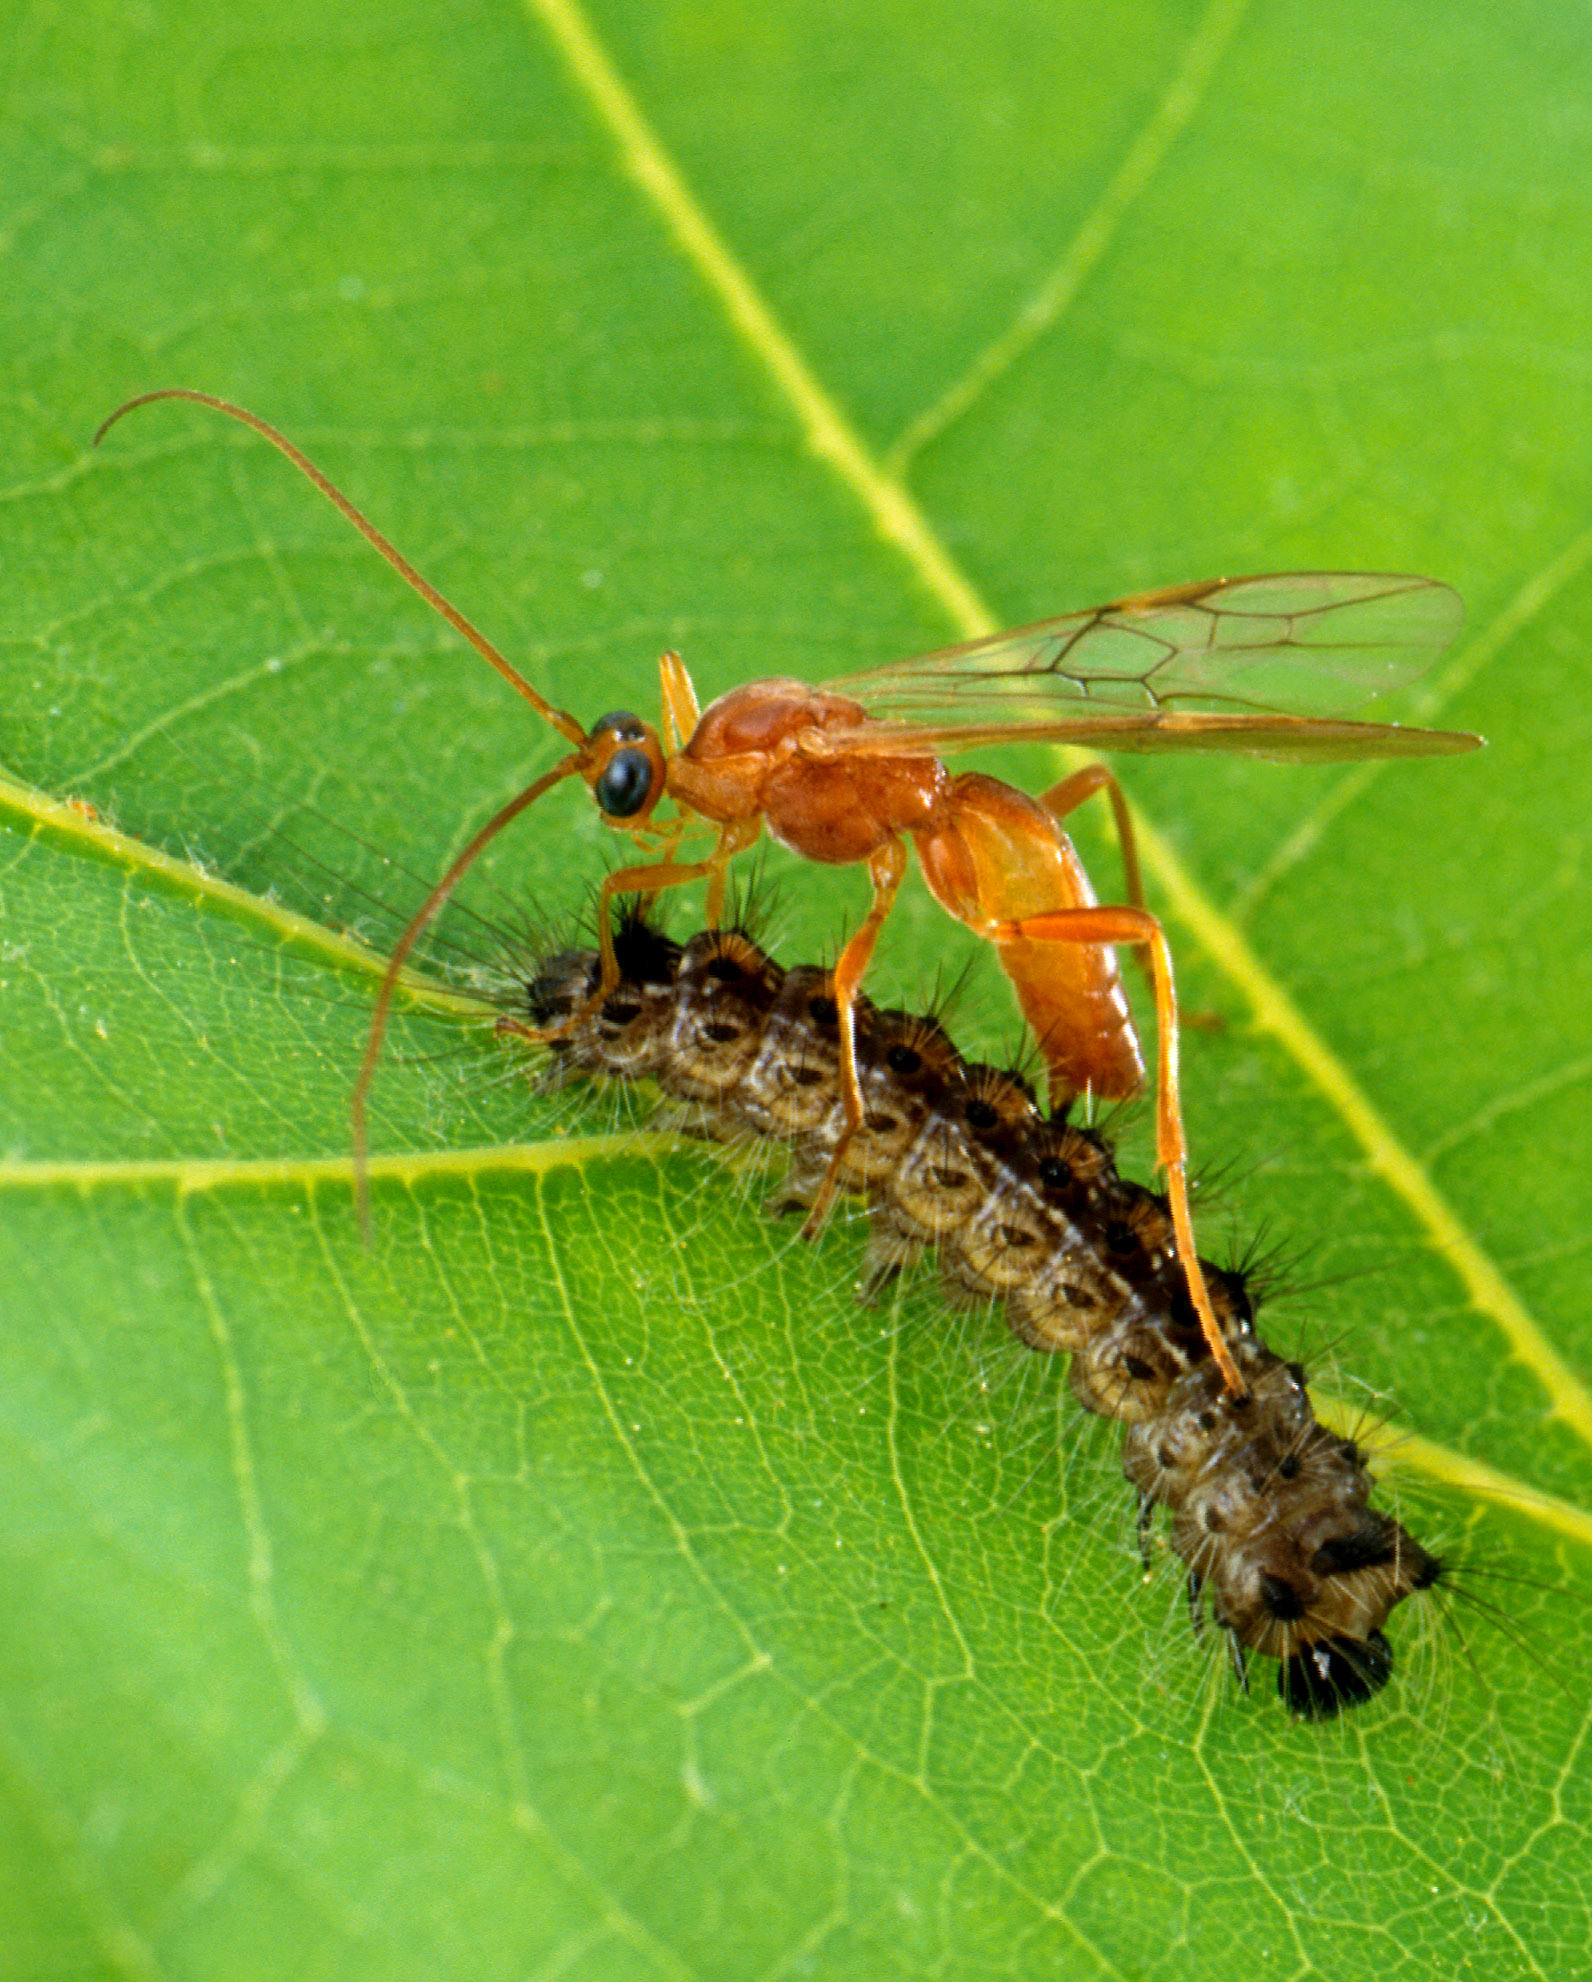 A bright orange wasp perches atop a brownish caterpillar with some bristly, dark hairs, on a green leaf.